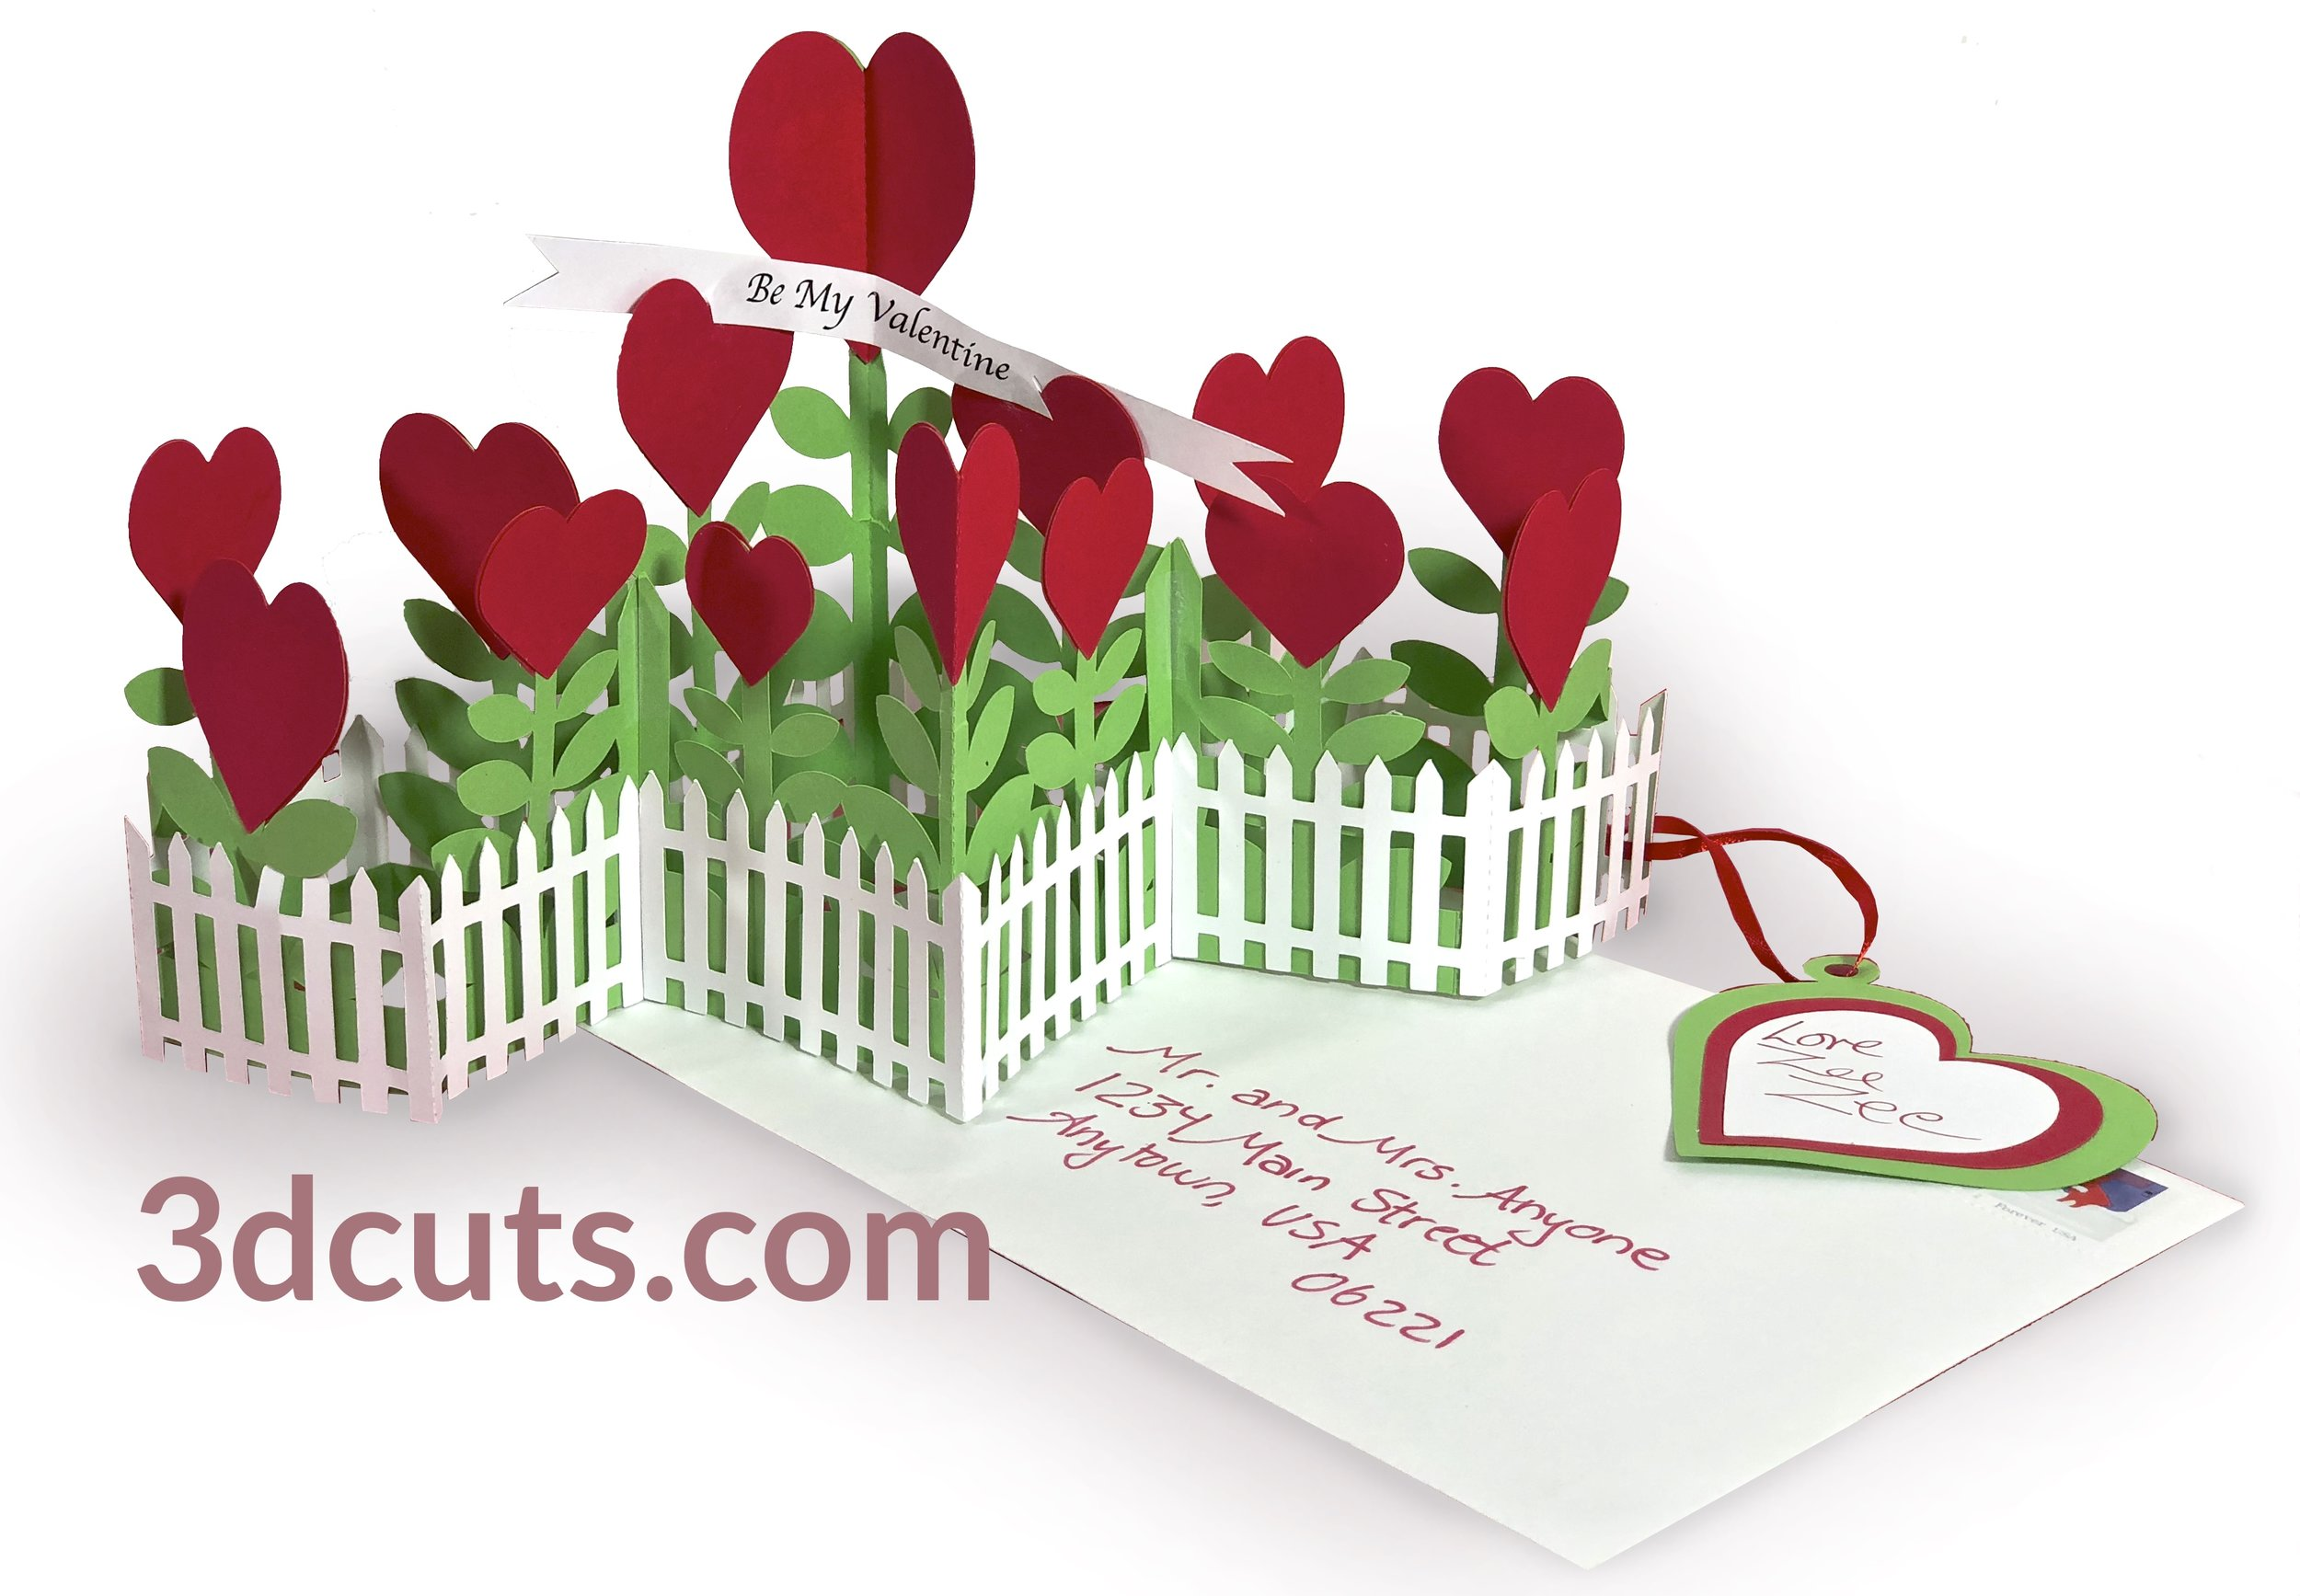 Valentine Garden  by 3dCuts.com, by Marji Roy, Cutting files in .svg, .dxf, png and .pdf formats for use with Silhouette, Cricut and Brother cutting machines, paper crafting files, SVG Files